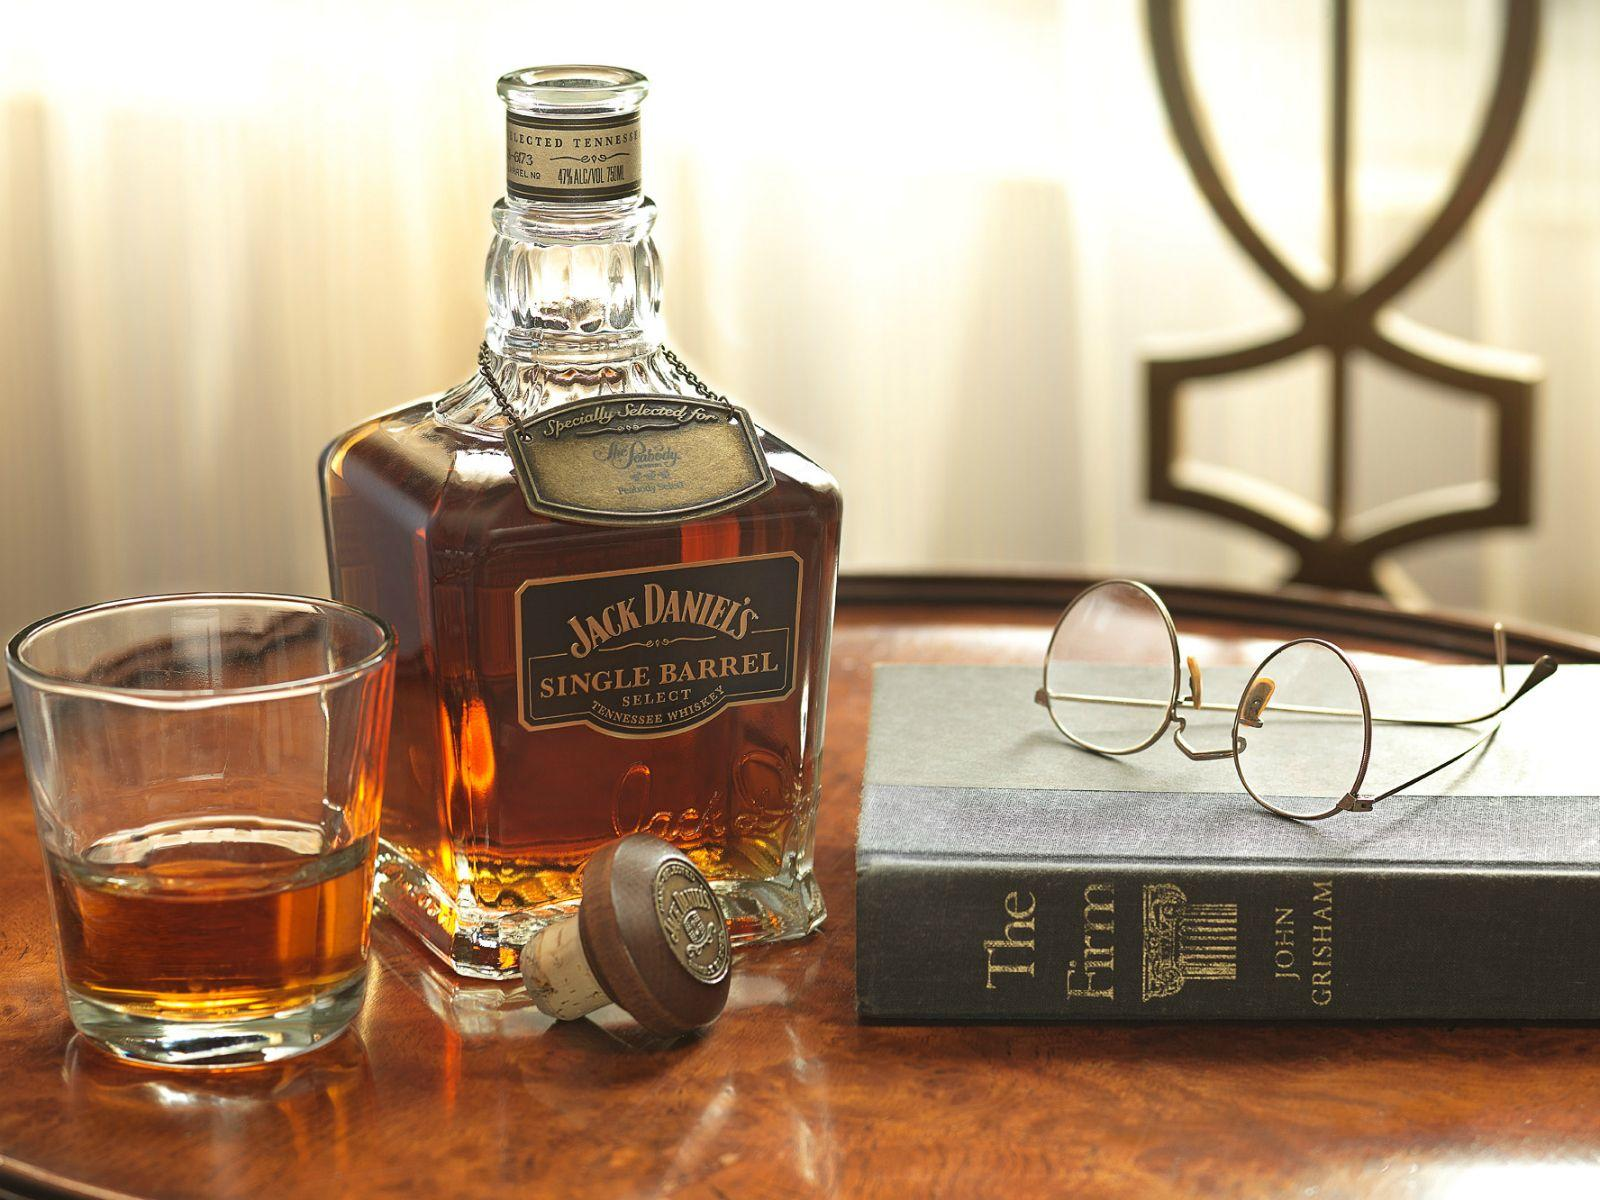 Bottle and poured glass of Jack Daniels